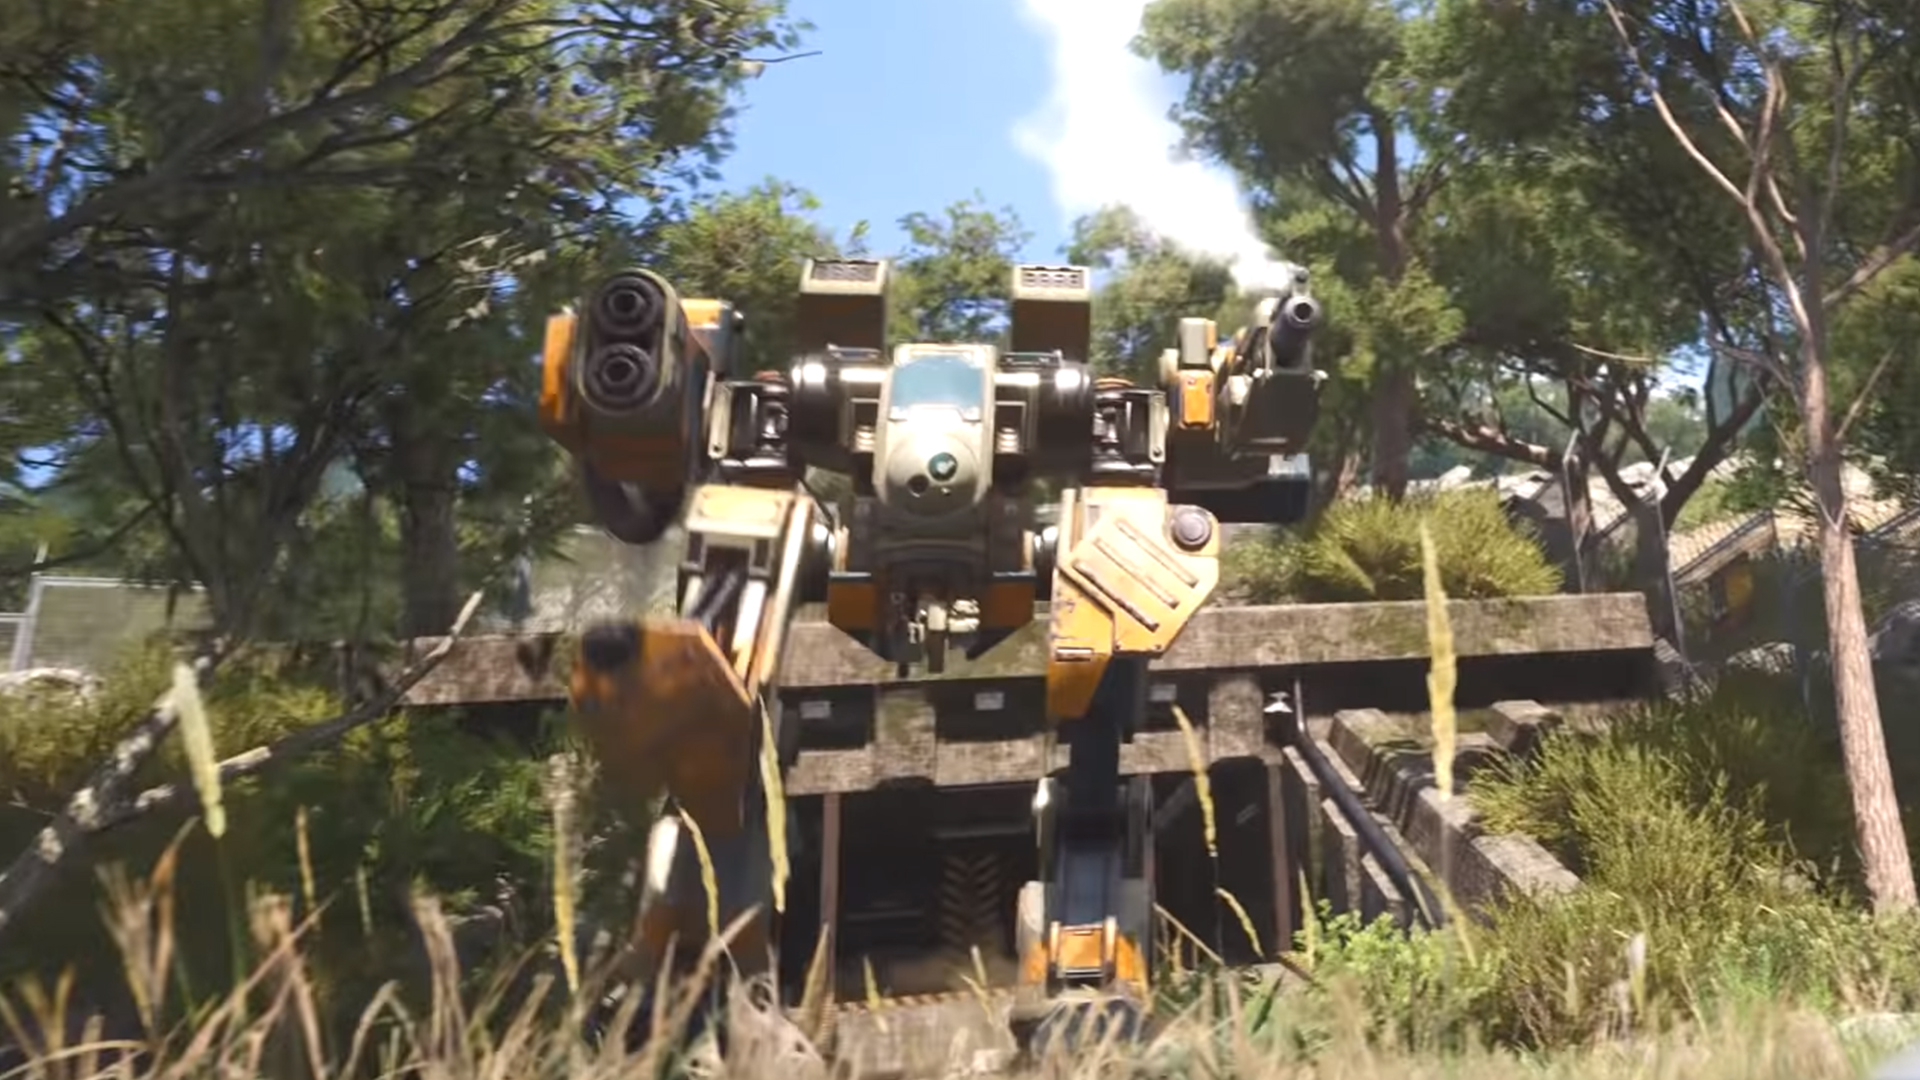 You can kill the sentry robots in Scum, here's how | PCGamesN